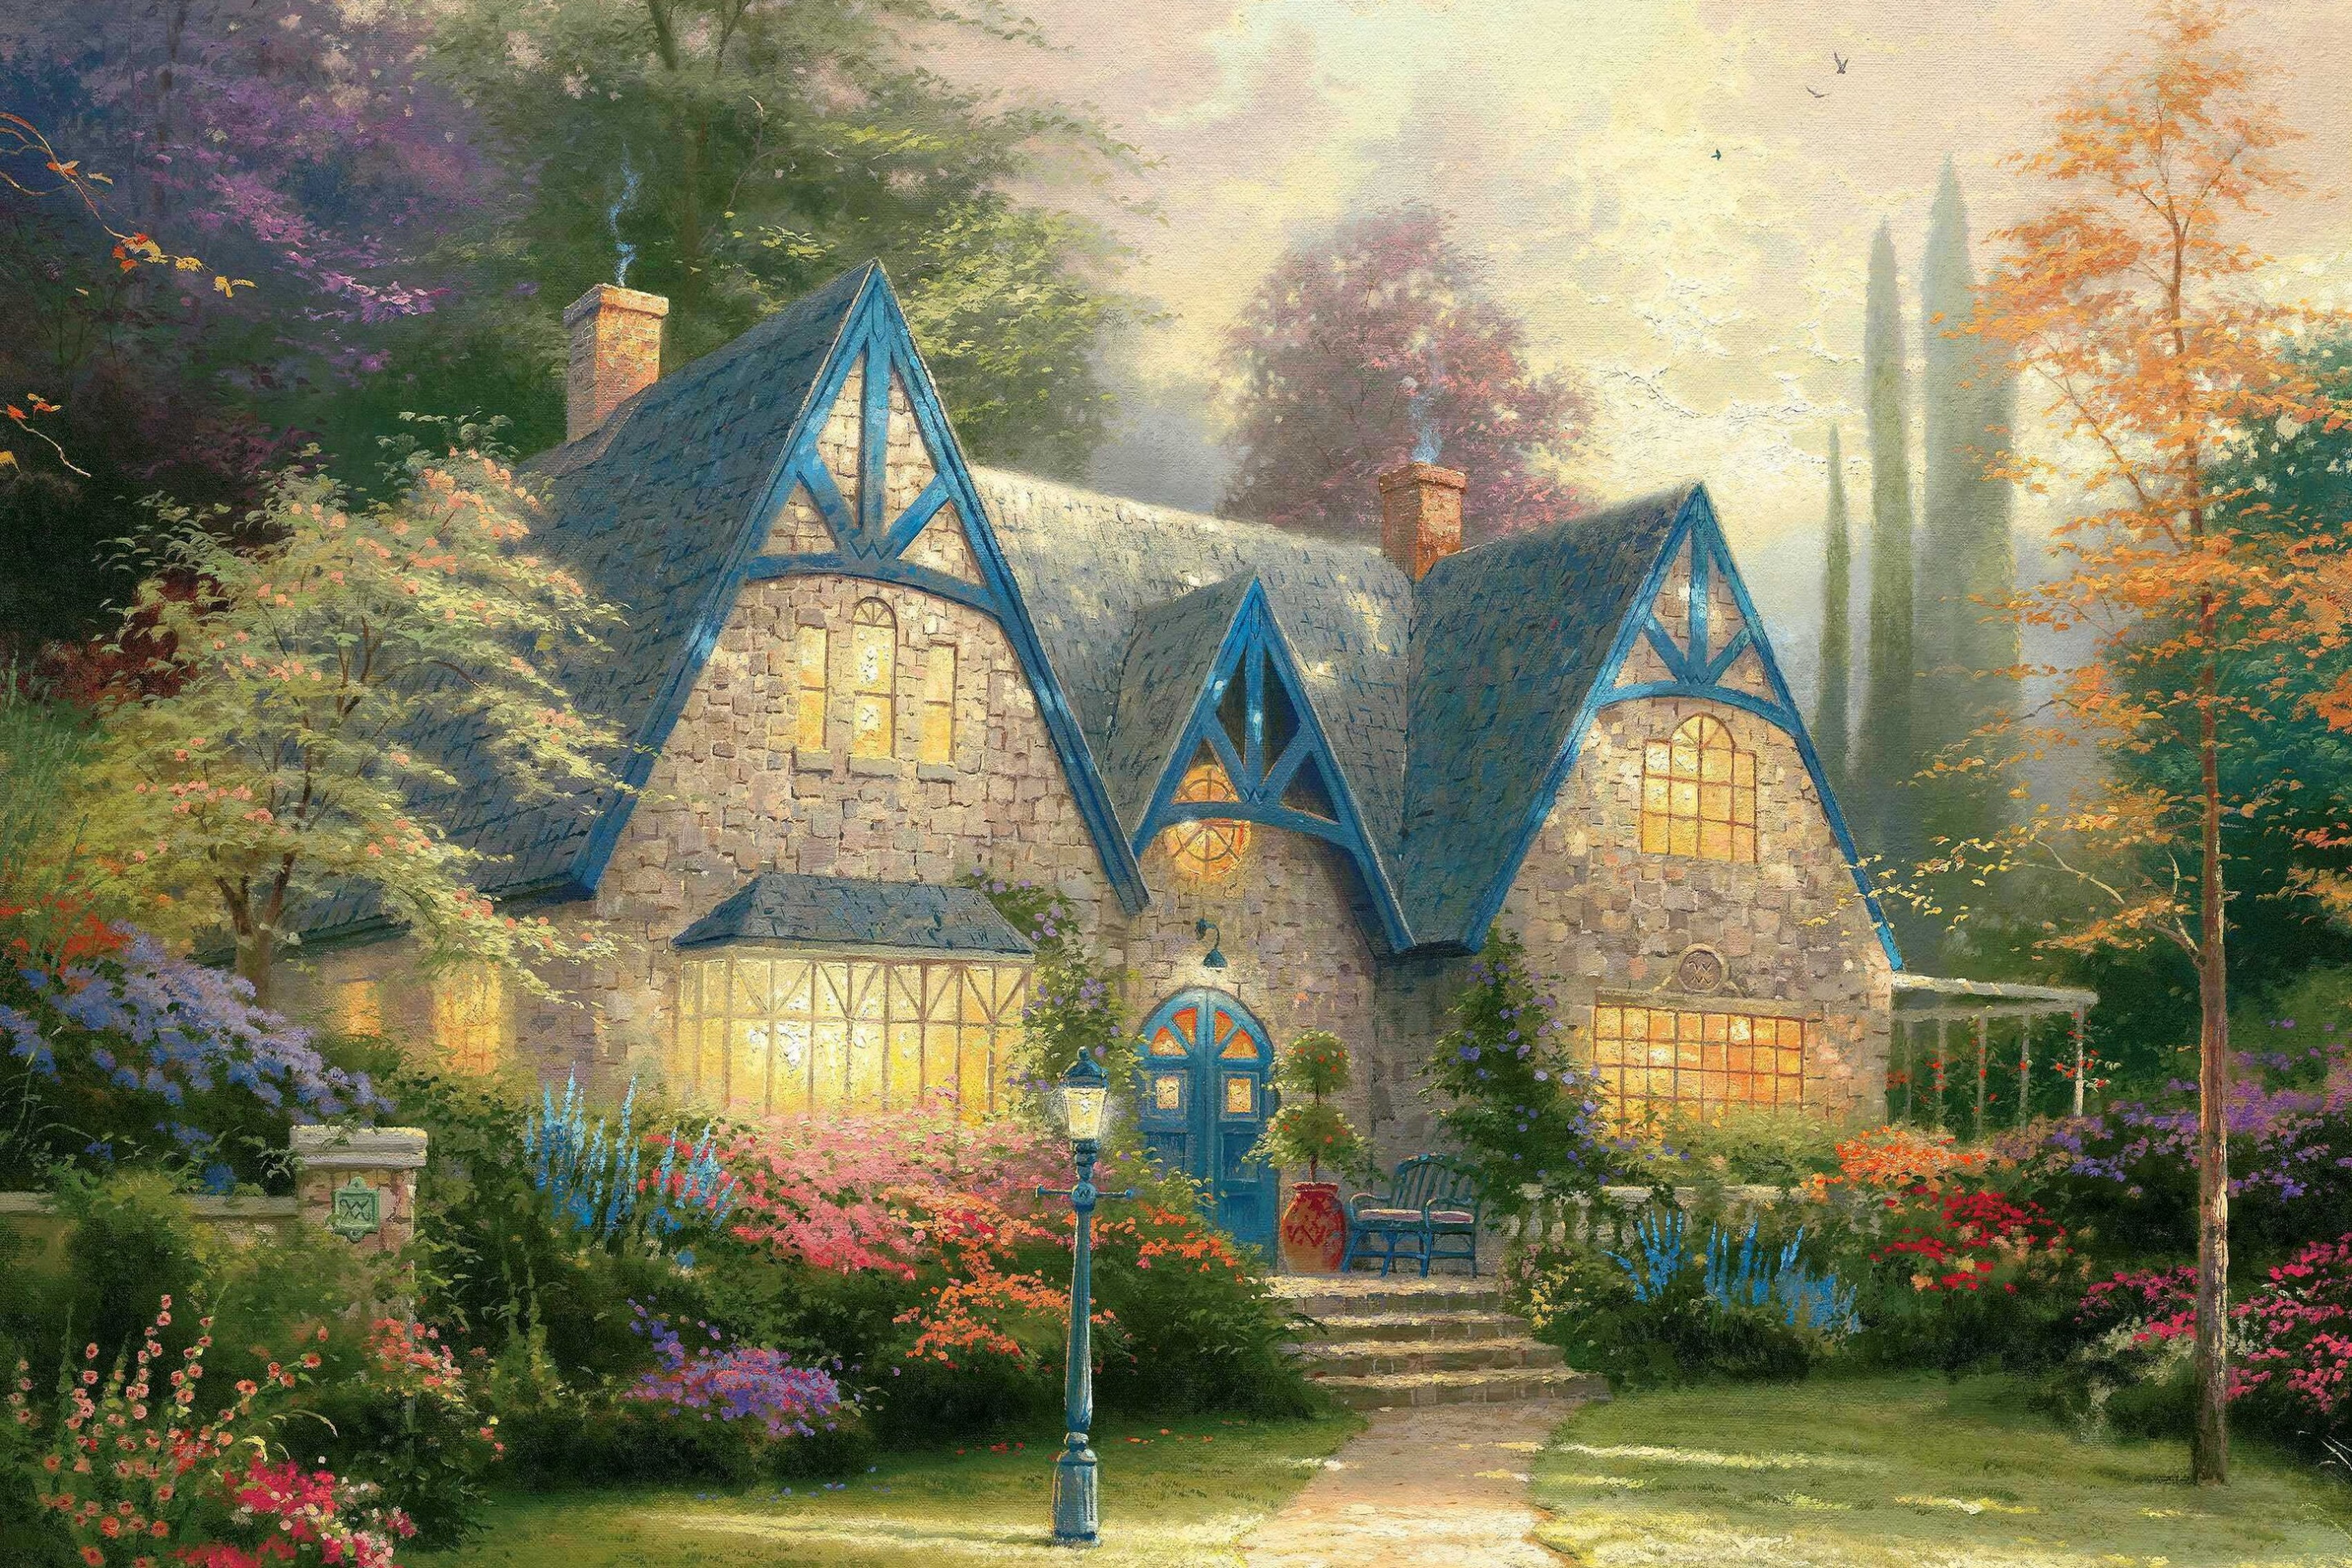 Winsor Manor Thomas Kinkade font b painting b font font b mansion b font home garden